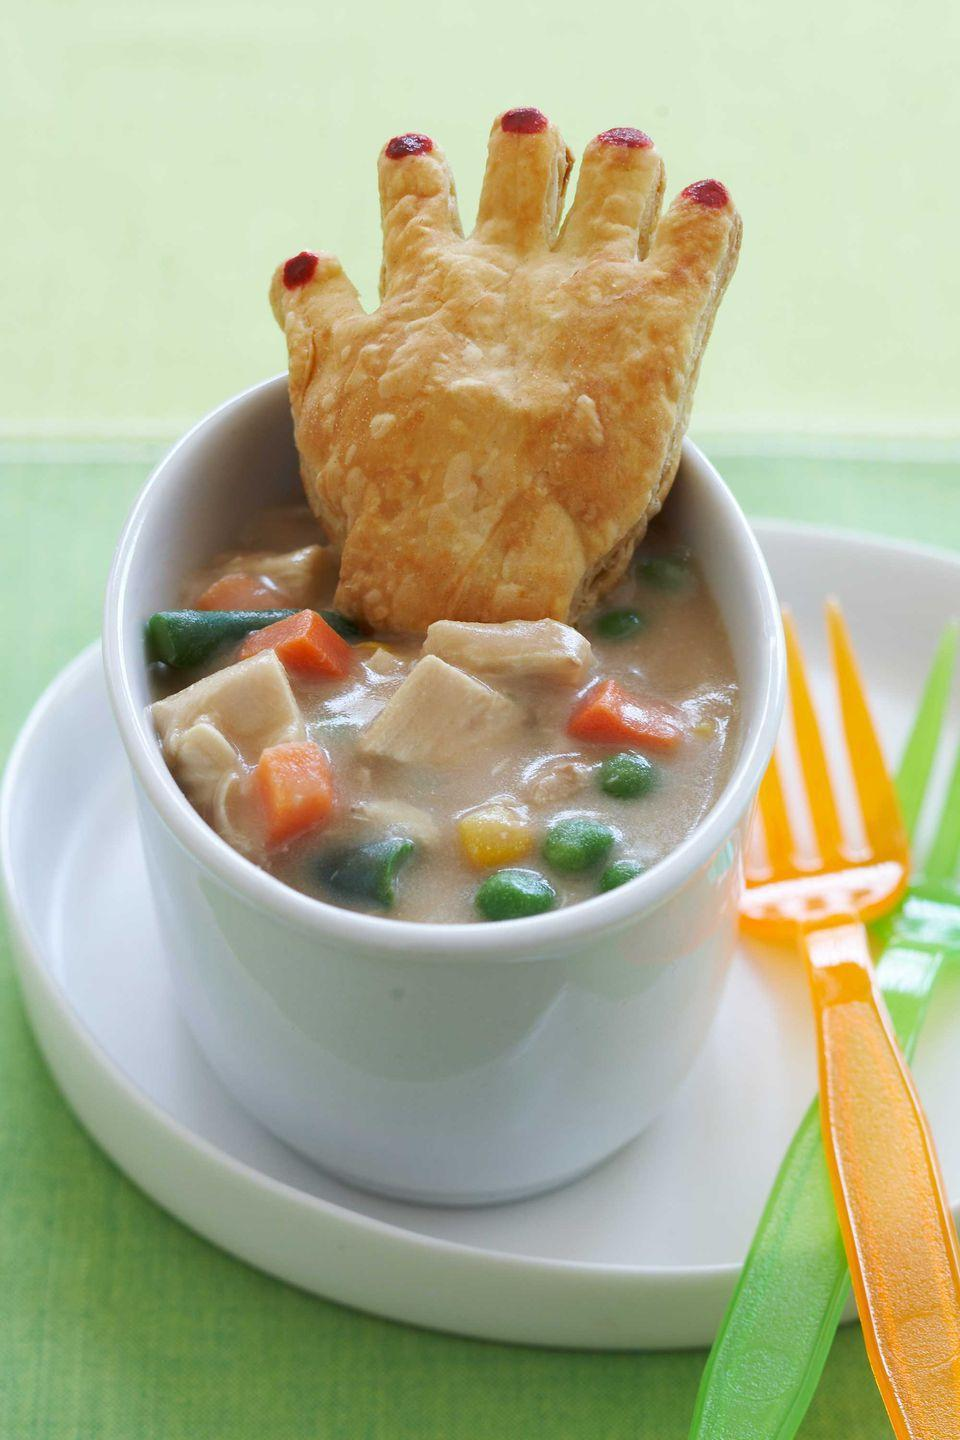 "<p>This savory pot pie is packed with veggies and protein to keep your <a href=""https://www.womansday.com/home/crafts-projects/how-to/g510/10-easy-to-make-kids-costumes-124463/"" rel=""nofollow noopener"" target=""_blank"" data-ylk=""slk:little ghost or goblin"" class=""link rapid-noclick-resp"">little ghost or goblin </a>well nourished for the night ahead.</p><p><strong><a href=""https://www.womansday.com/food-recipes/food-drinks/recipes/a11095/chicken-potpie-crawling-hands-recipe-122451/"" rel=""nofollow noopener"" target=""_blank"" data-ylk=""slk:Get the recipe."" class=""link rapid-noclick-resp"">Get the recipe.</a></strong></p>"